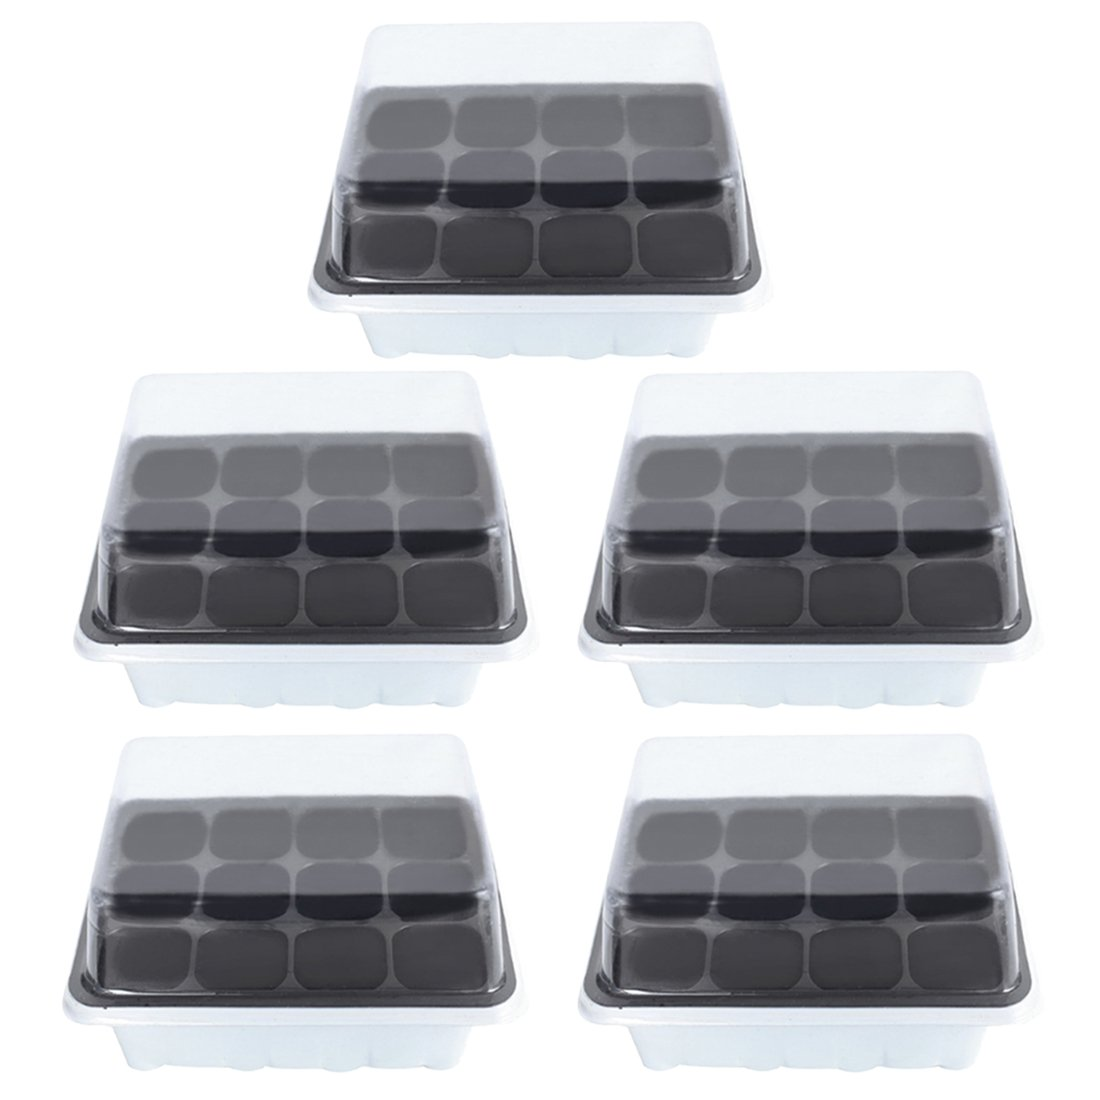 Seed Sprouter Tray, Petforu 5 Set 12-Cell Plant Germination Trays with Lid (White)